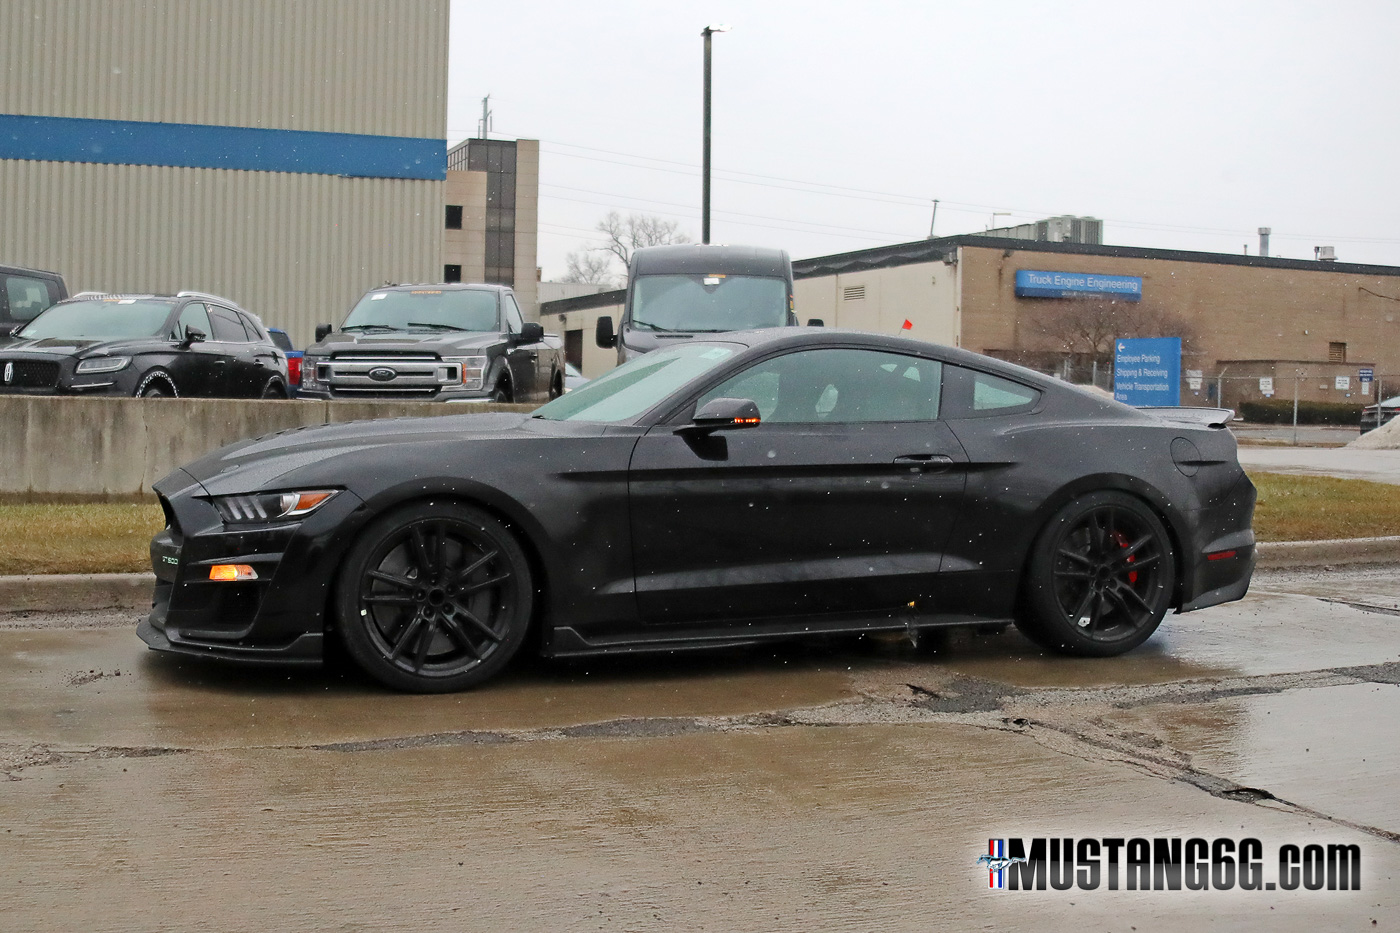 mustang gt500 shelby shadow gt bumper mustang6g bullitt dearborn spotted emblem testing colored s550 gt350 forums